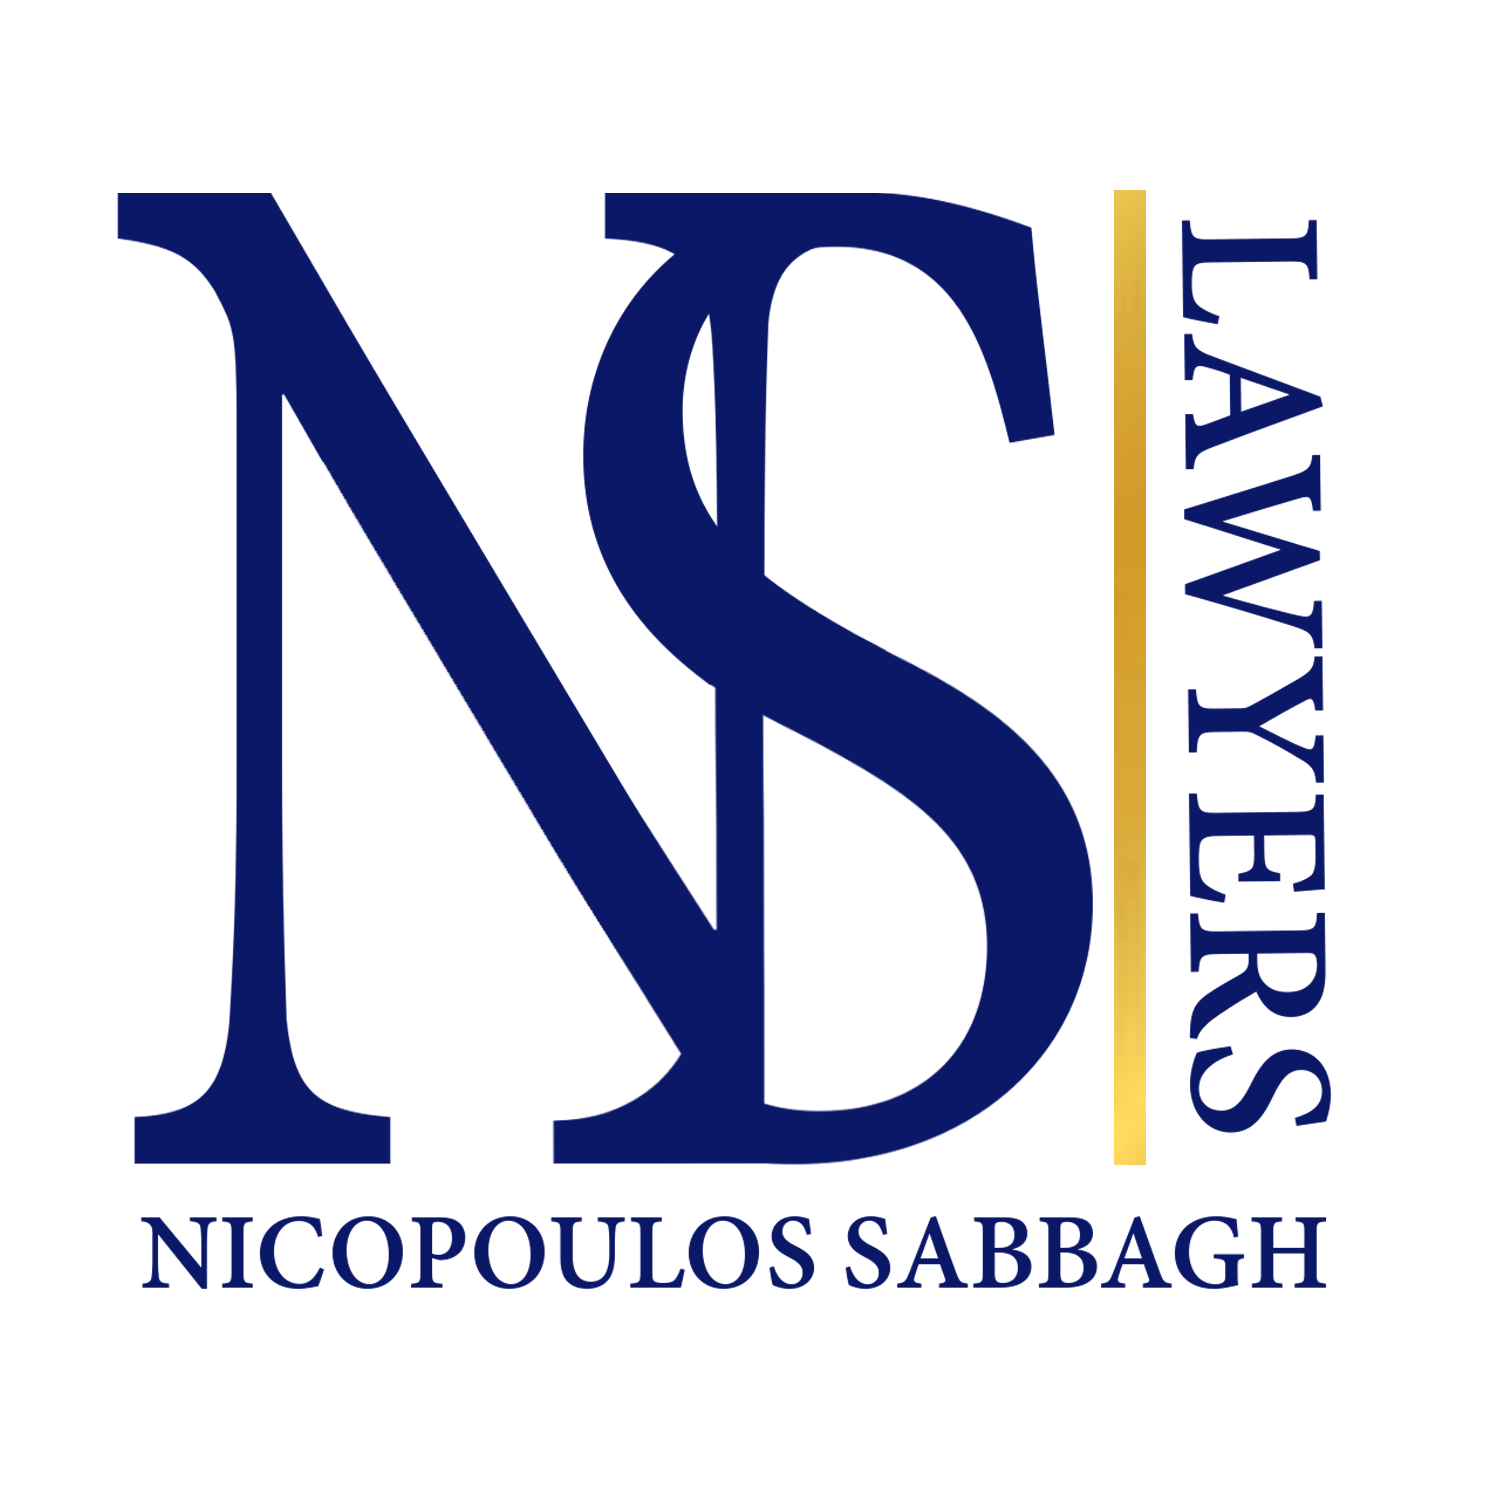 Nicopoulos Sabbagh Lawyers